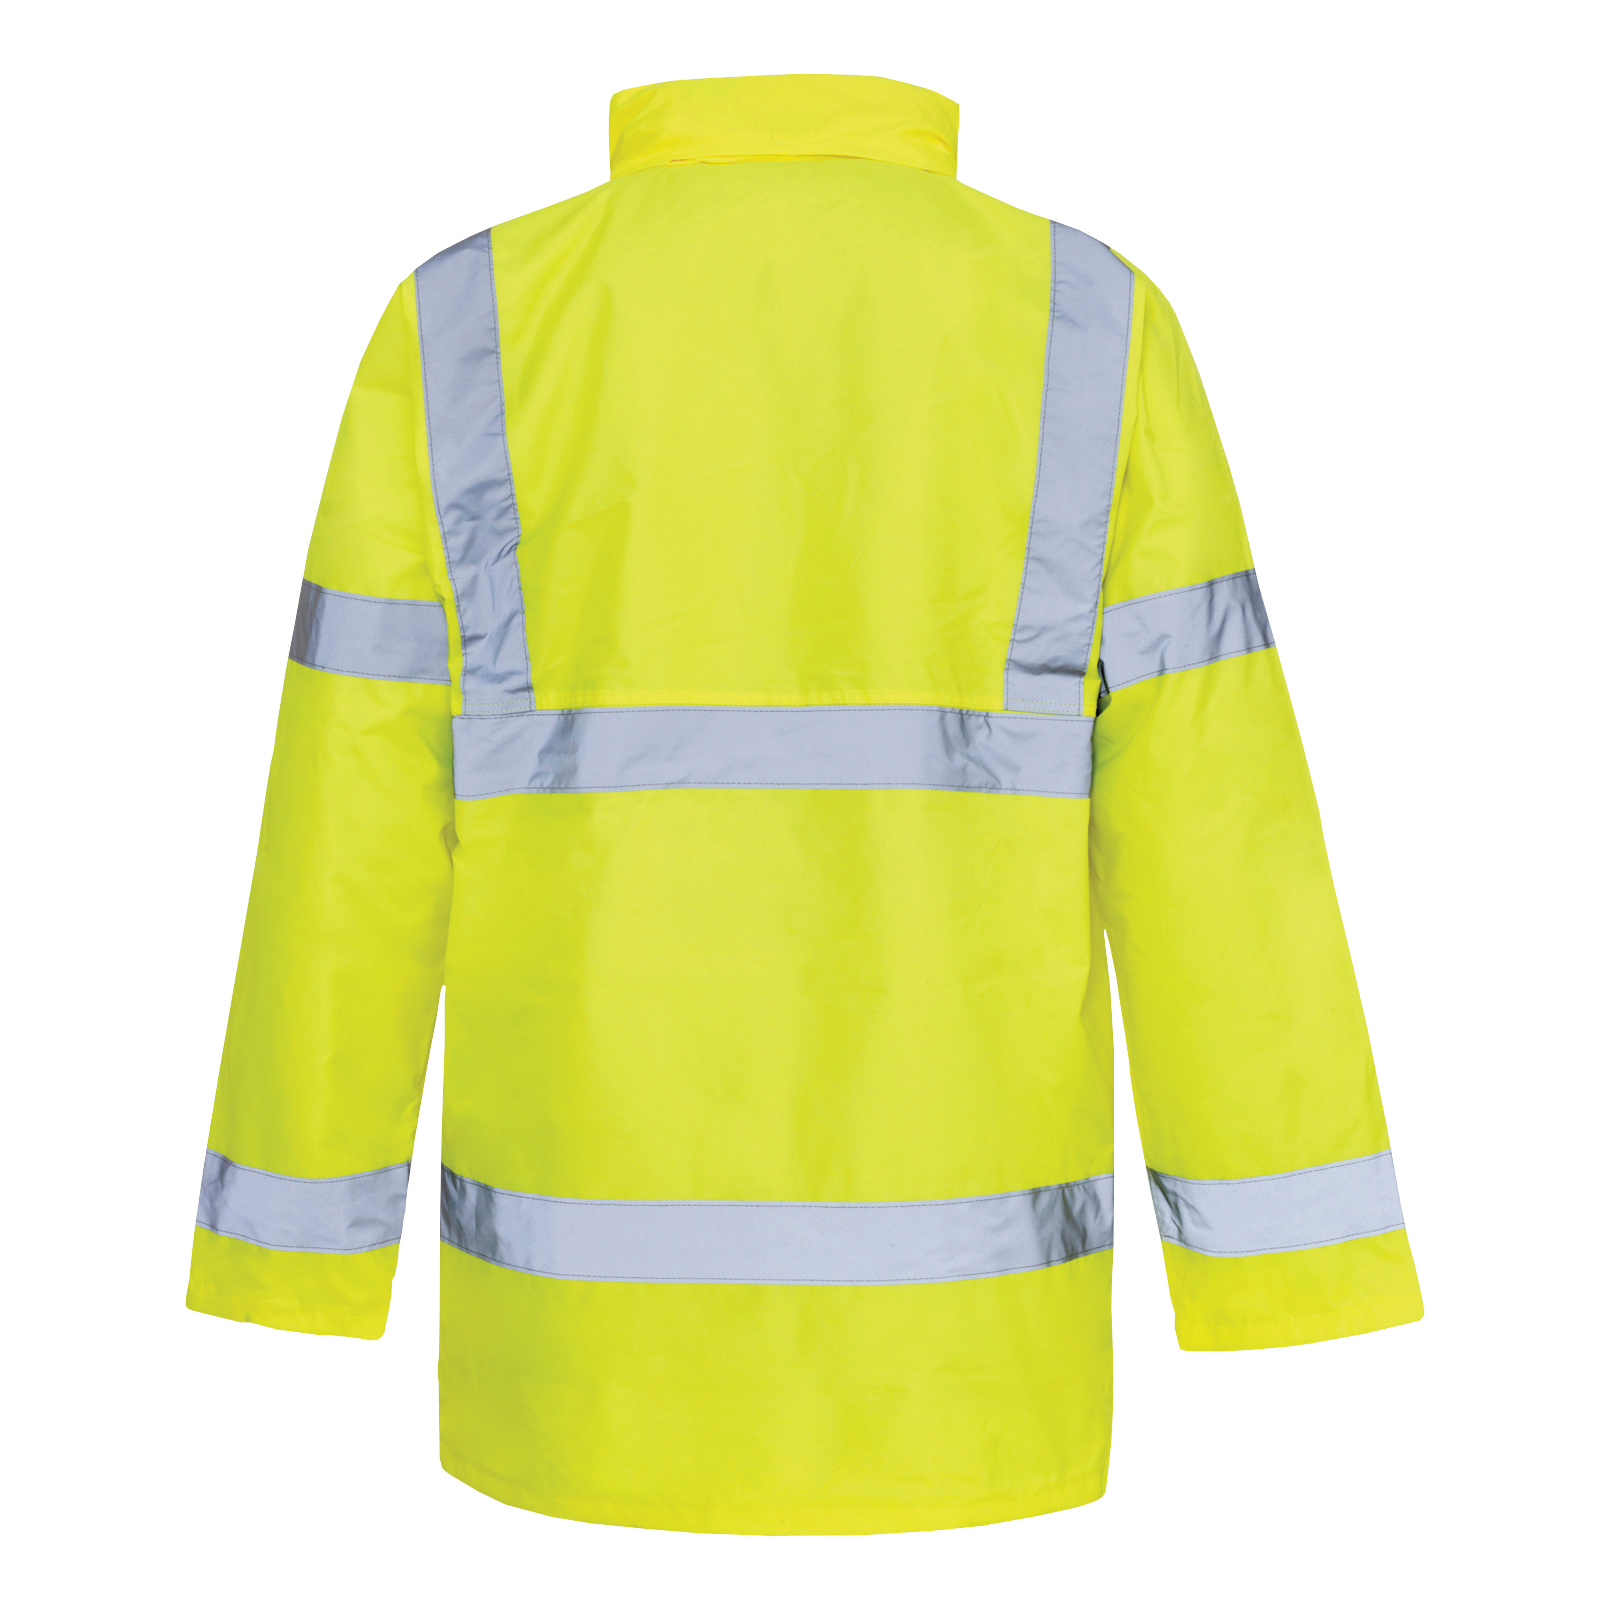 BSeen High Visibility Constructor Jacket XL Saturn Yellow Ref CTJENGSYXL Approx 3 Day Leadtime